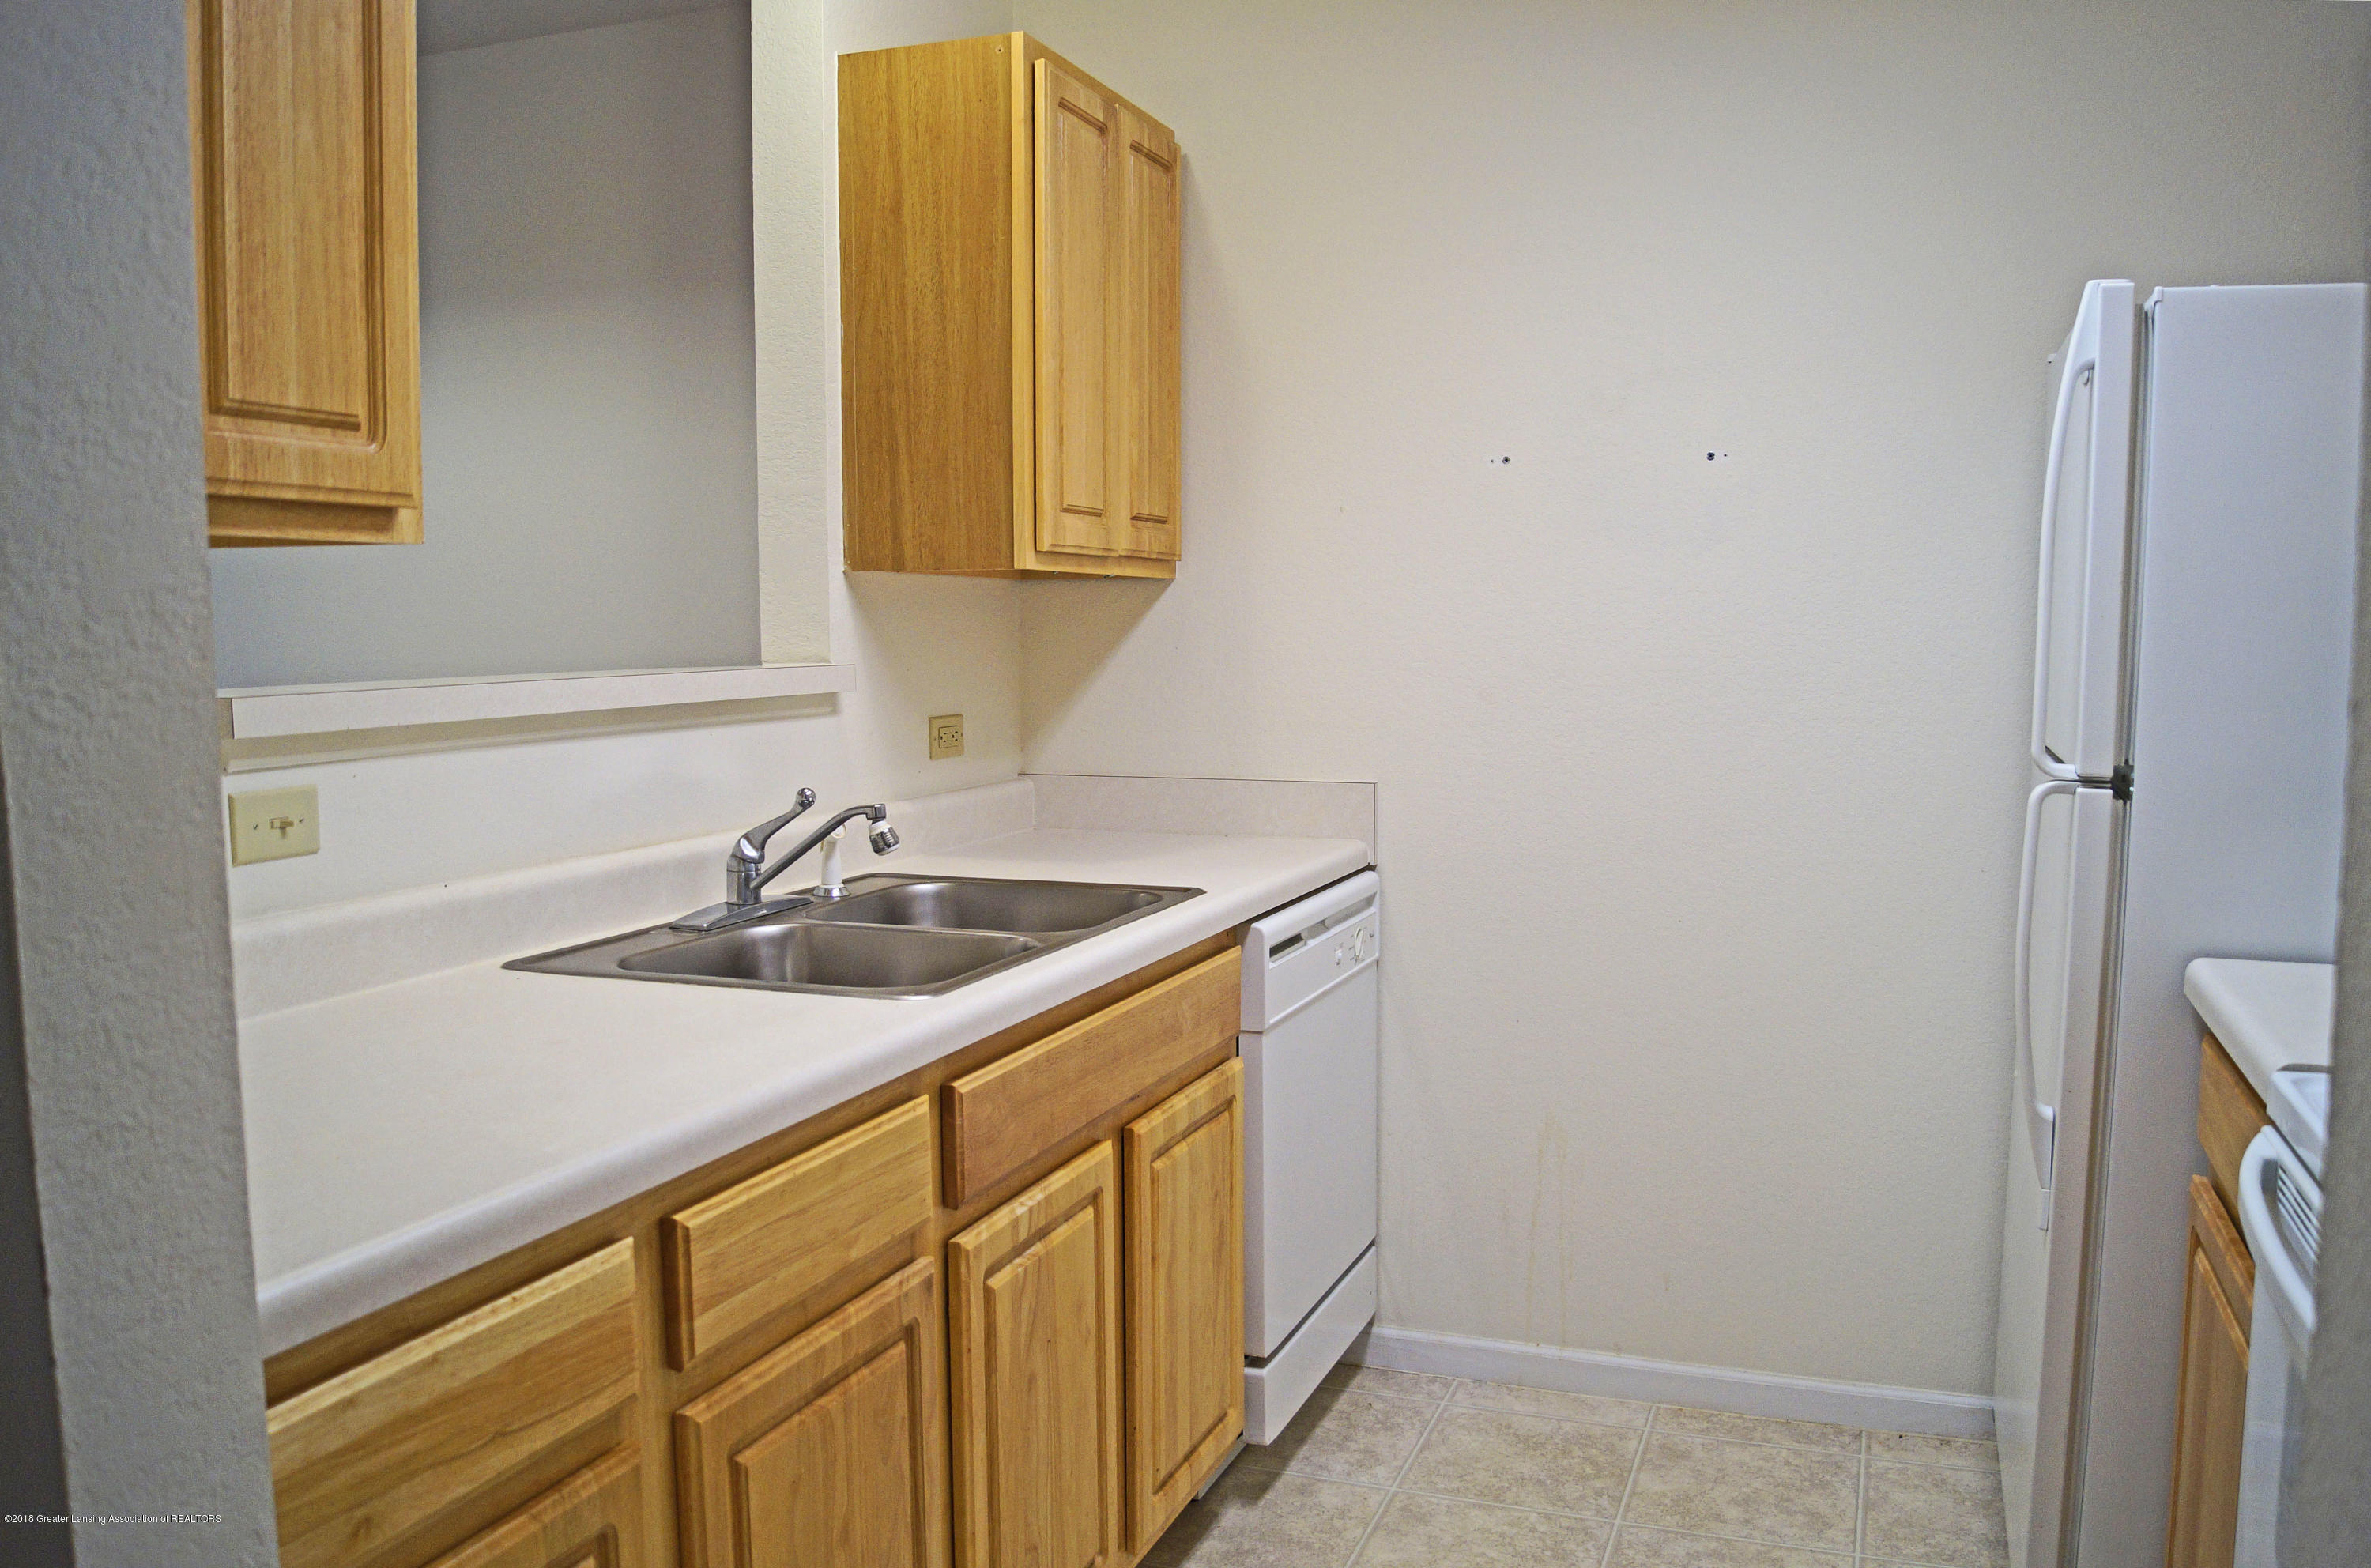 338 W Saginaw St UNIT 9 - Kitchen - 10